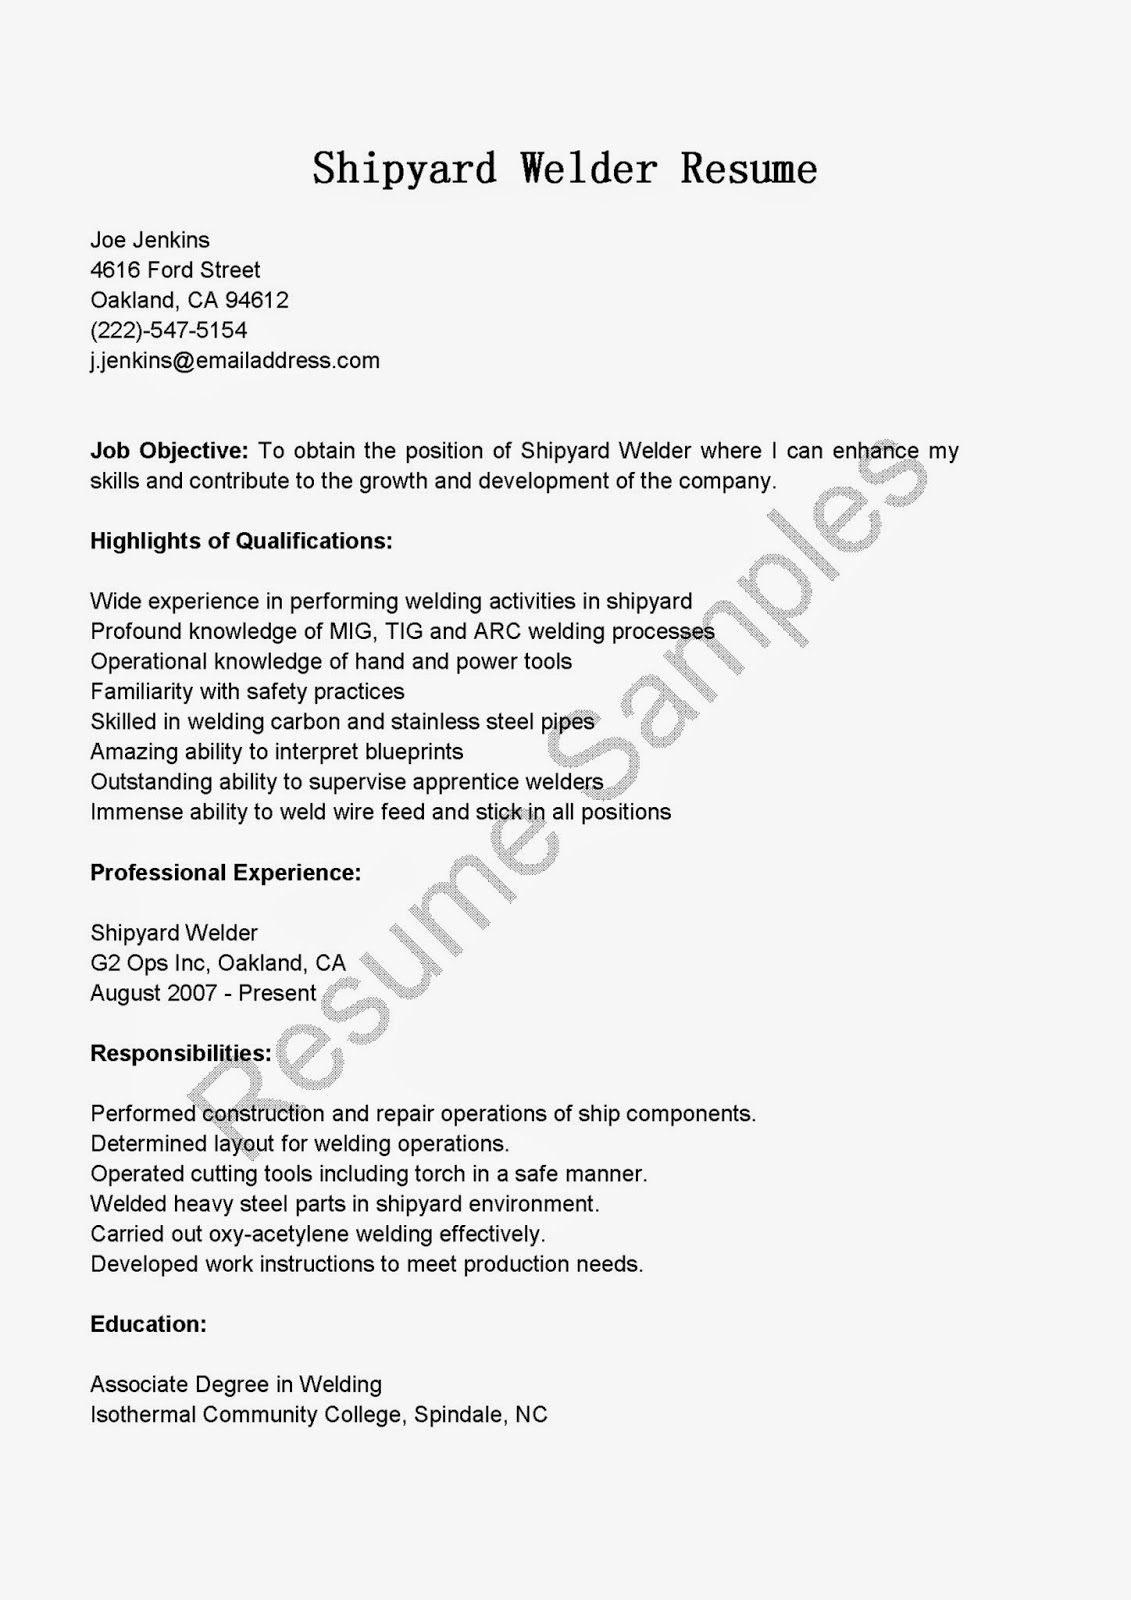 Welding Resume Sample Waqafu54 39 S Soup Resumebest